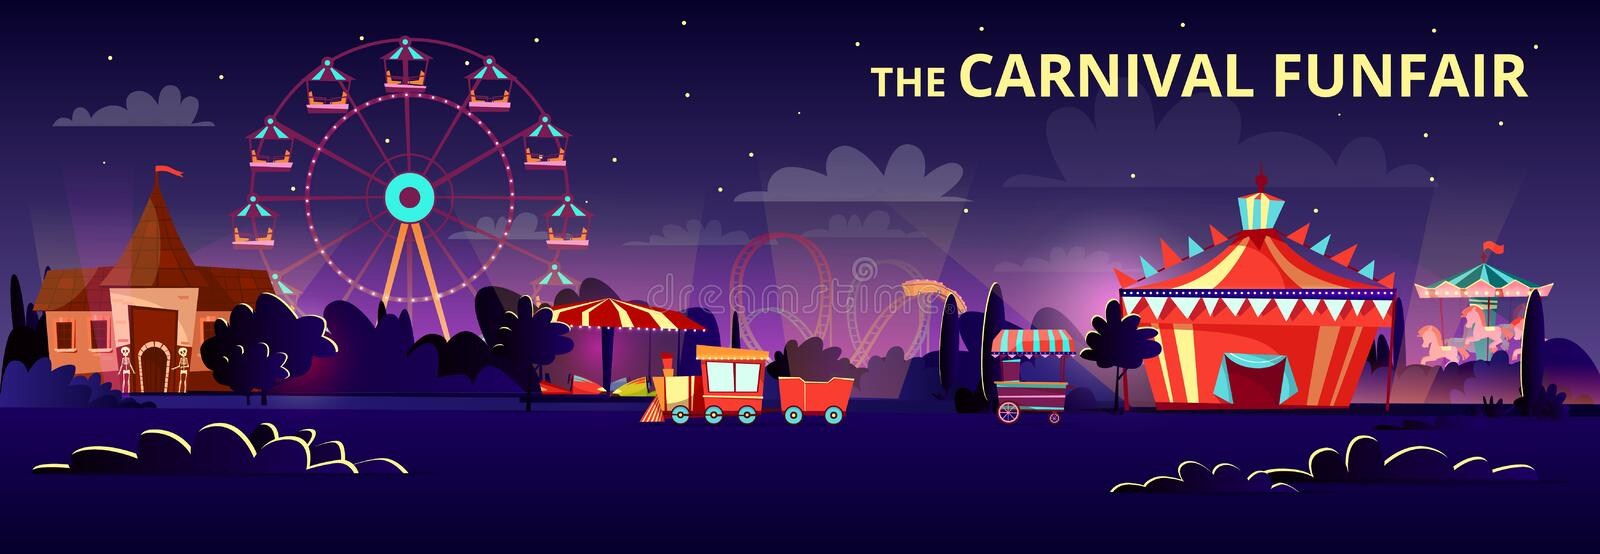 Amusement park cartoon illustration of carnival funfair at night with illumination of rides, carousels and circus tent vector illustration